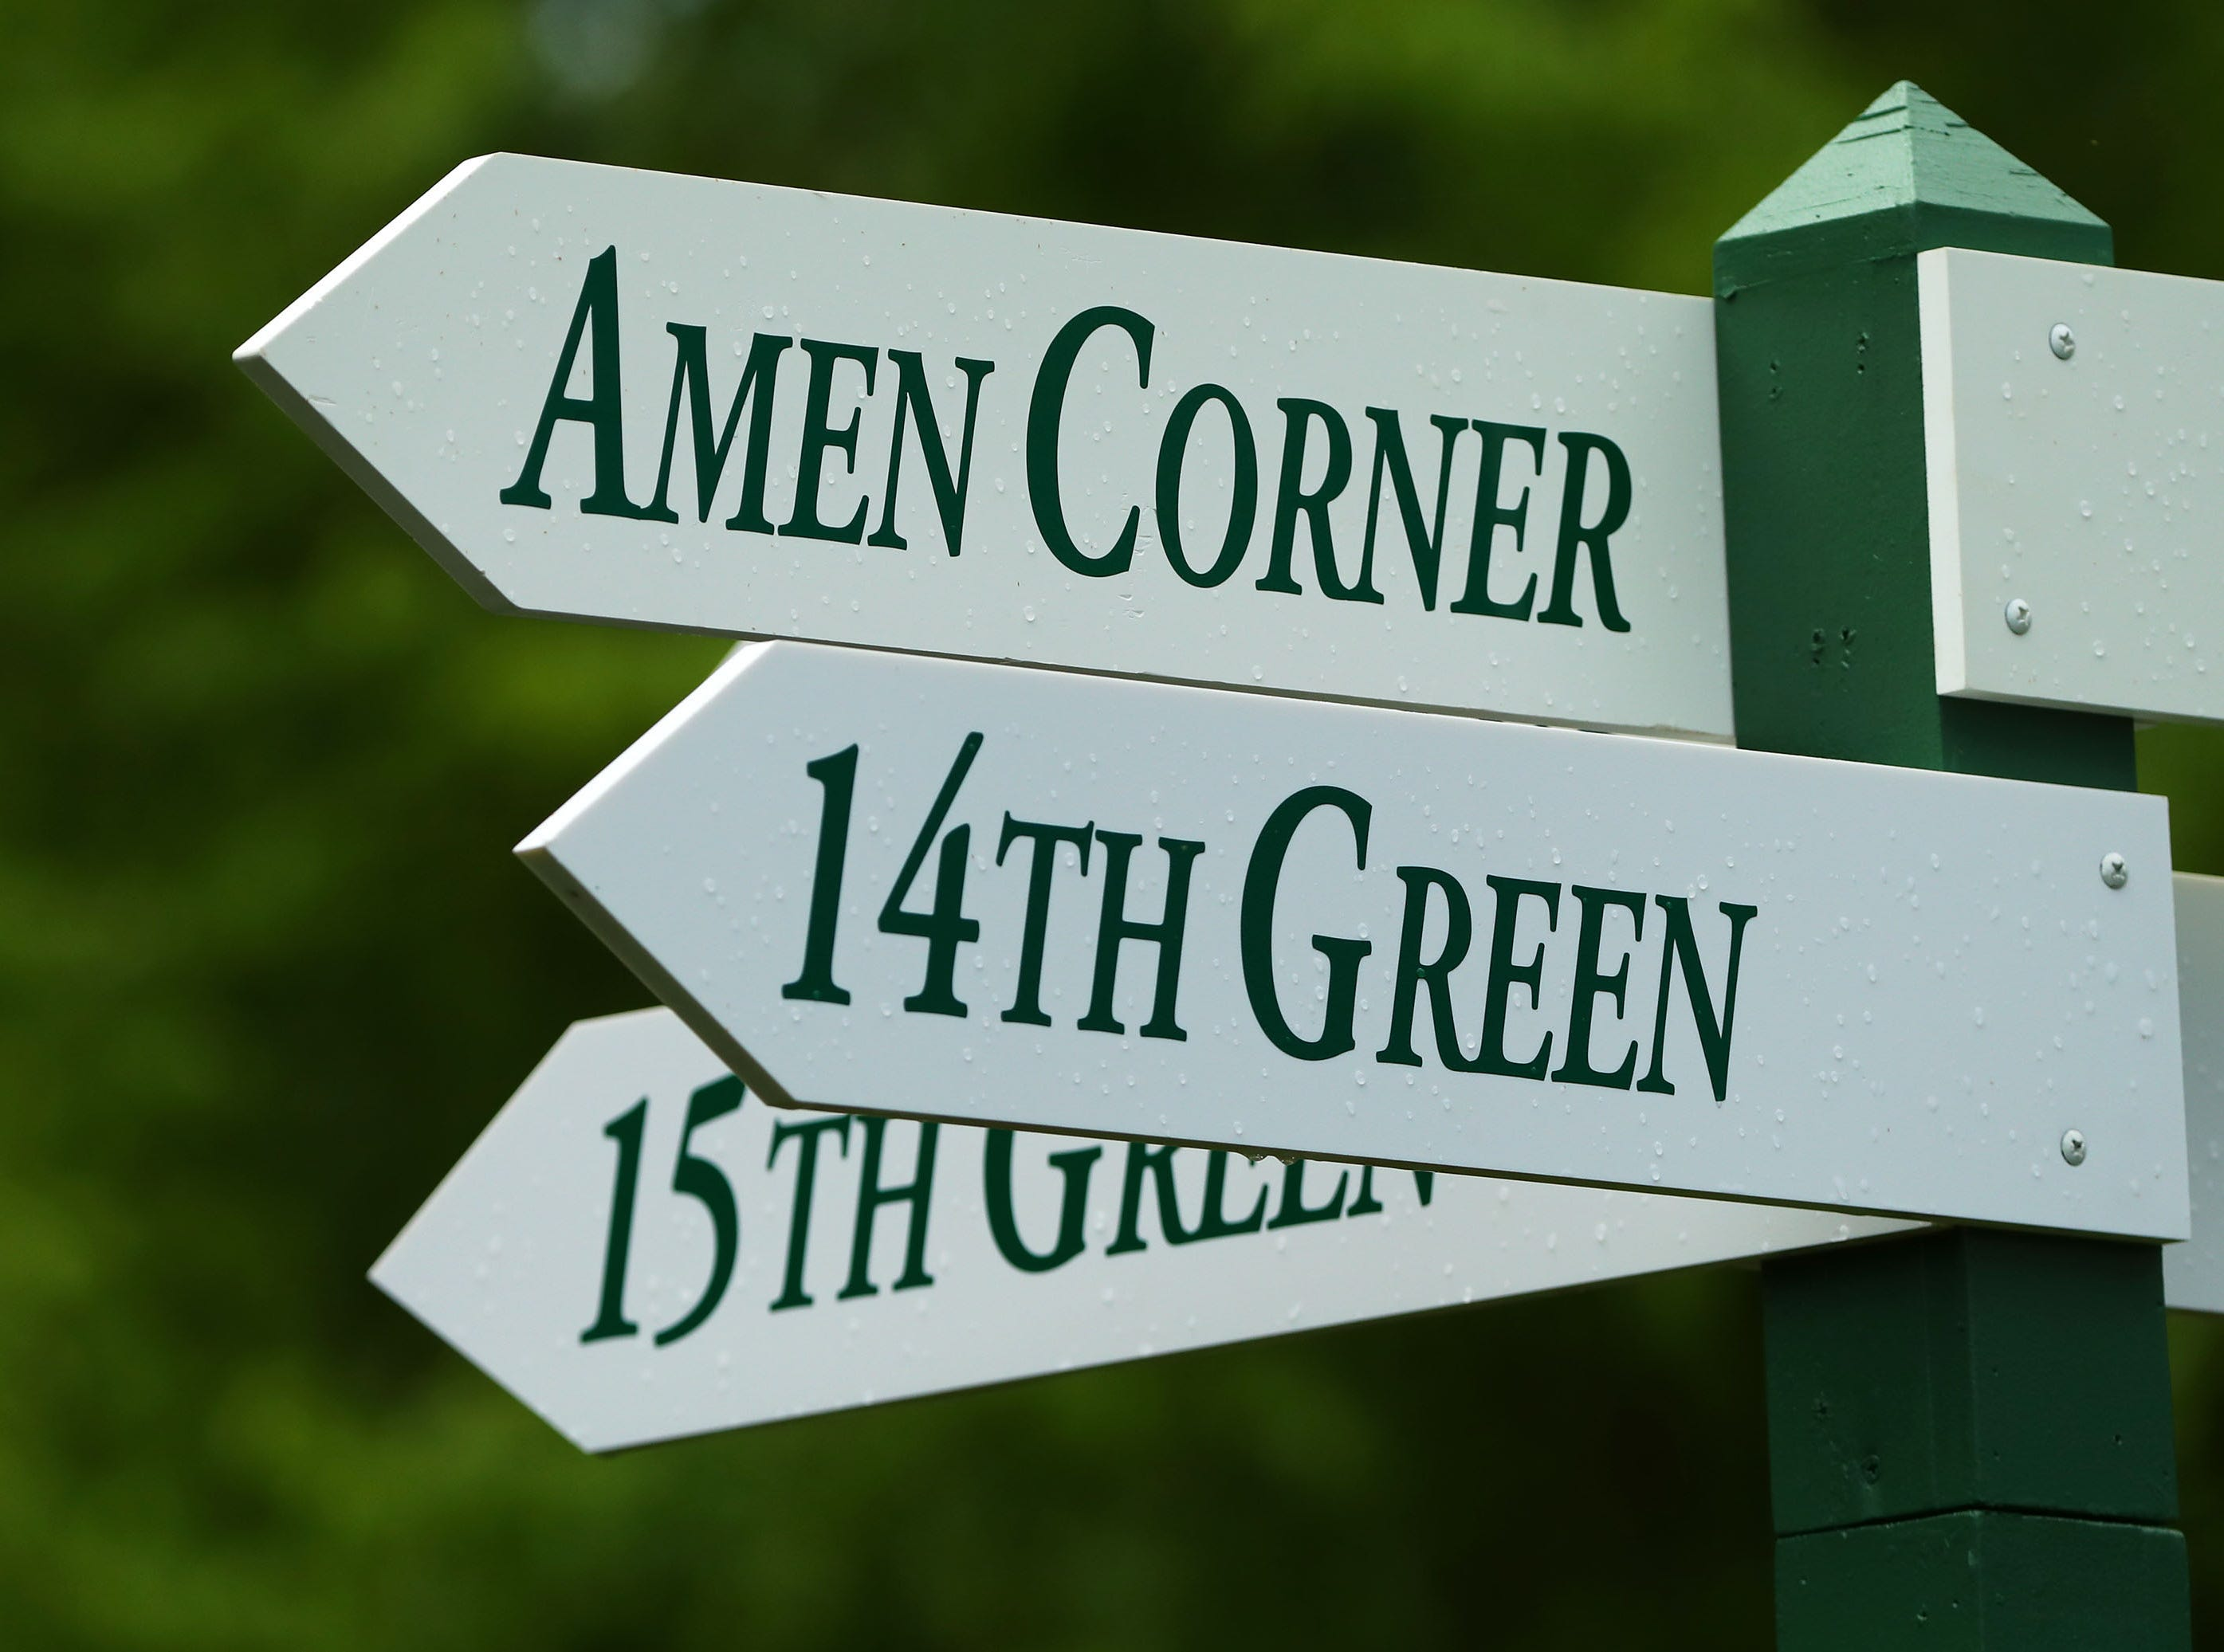 Apr 9, 2019; Augusta, GA, USA; Amen Corner sign near the 16th green during a practice round for The Masters golf tournament at Augusta National Golf Club. Mandatory Credit: Rob Schumacher-USA TODAY Sports